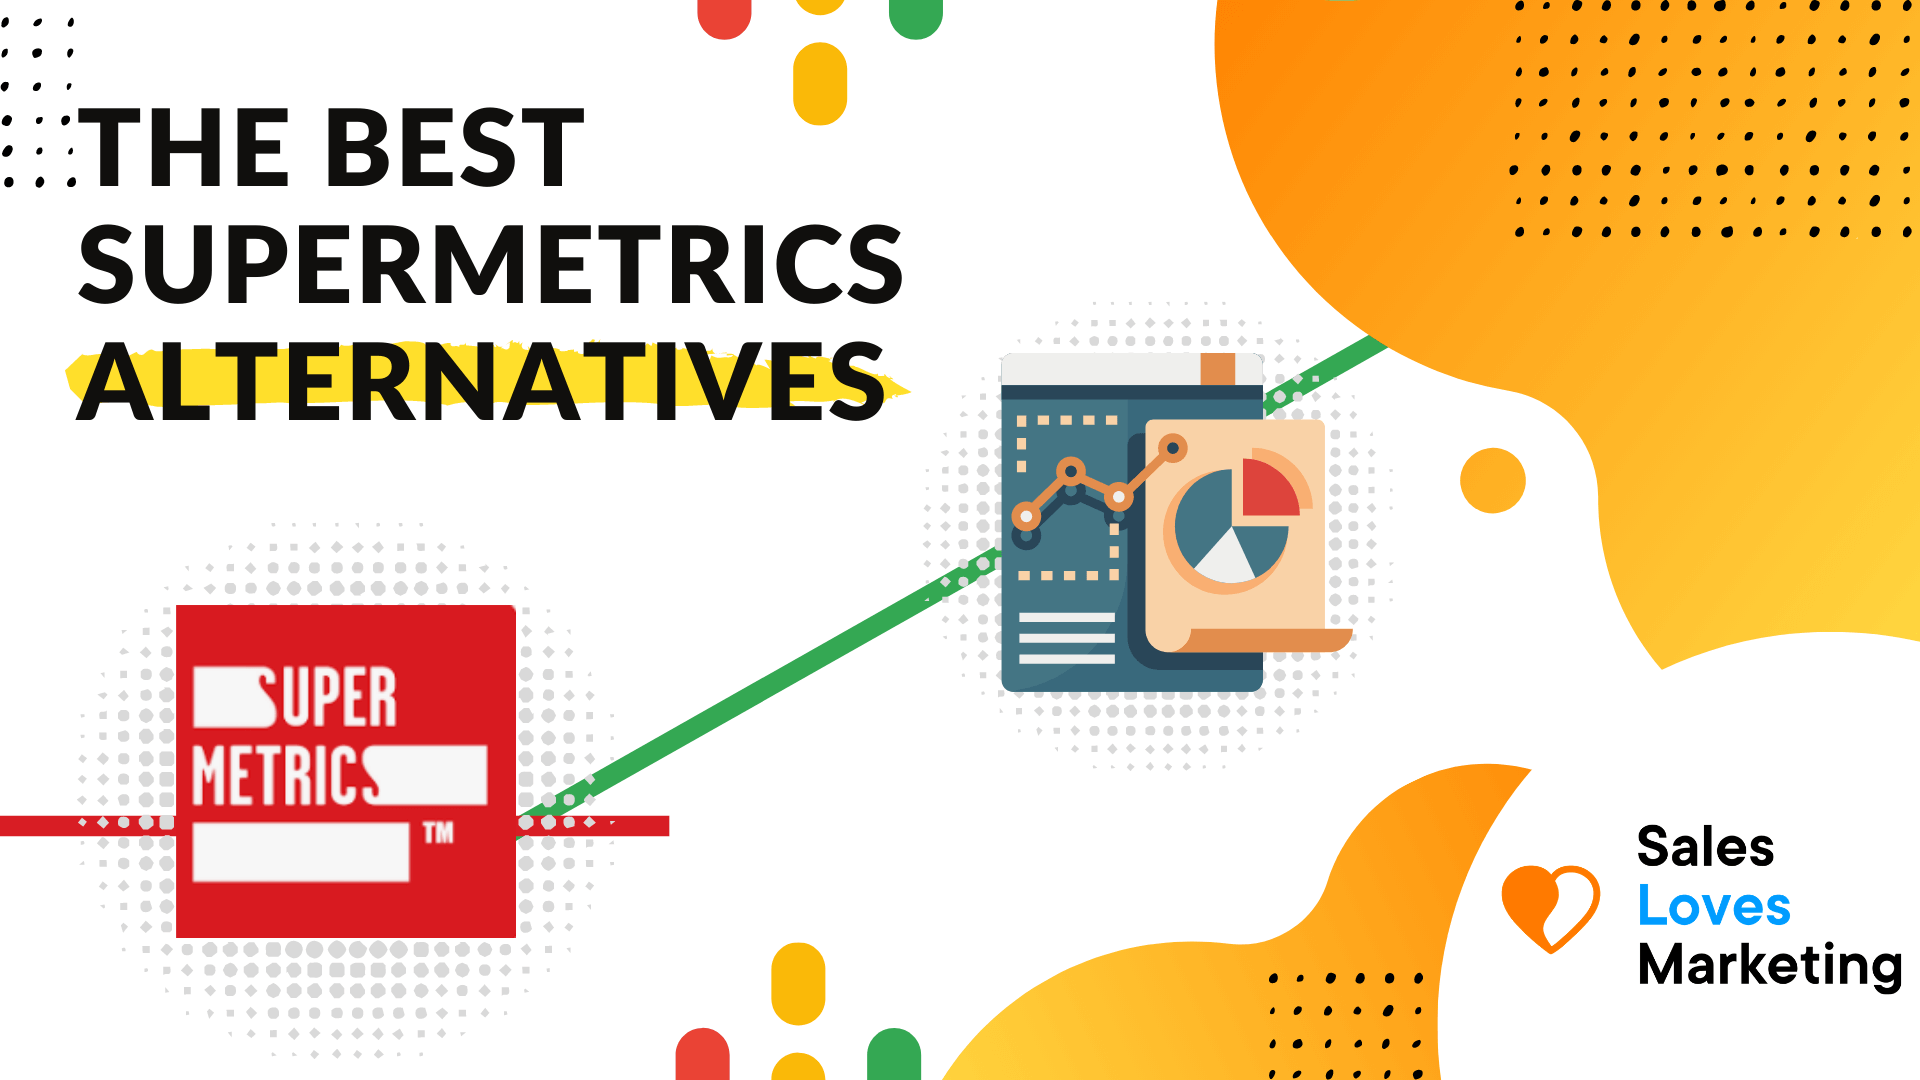 Supermetrics alternatives and competitors